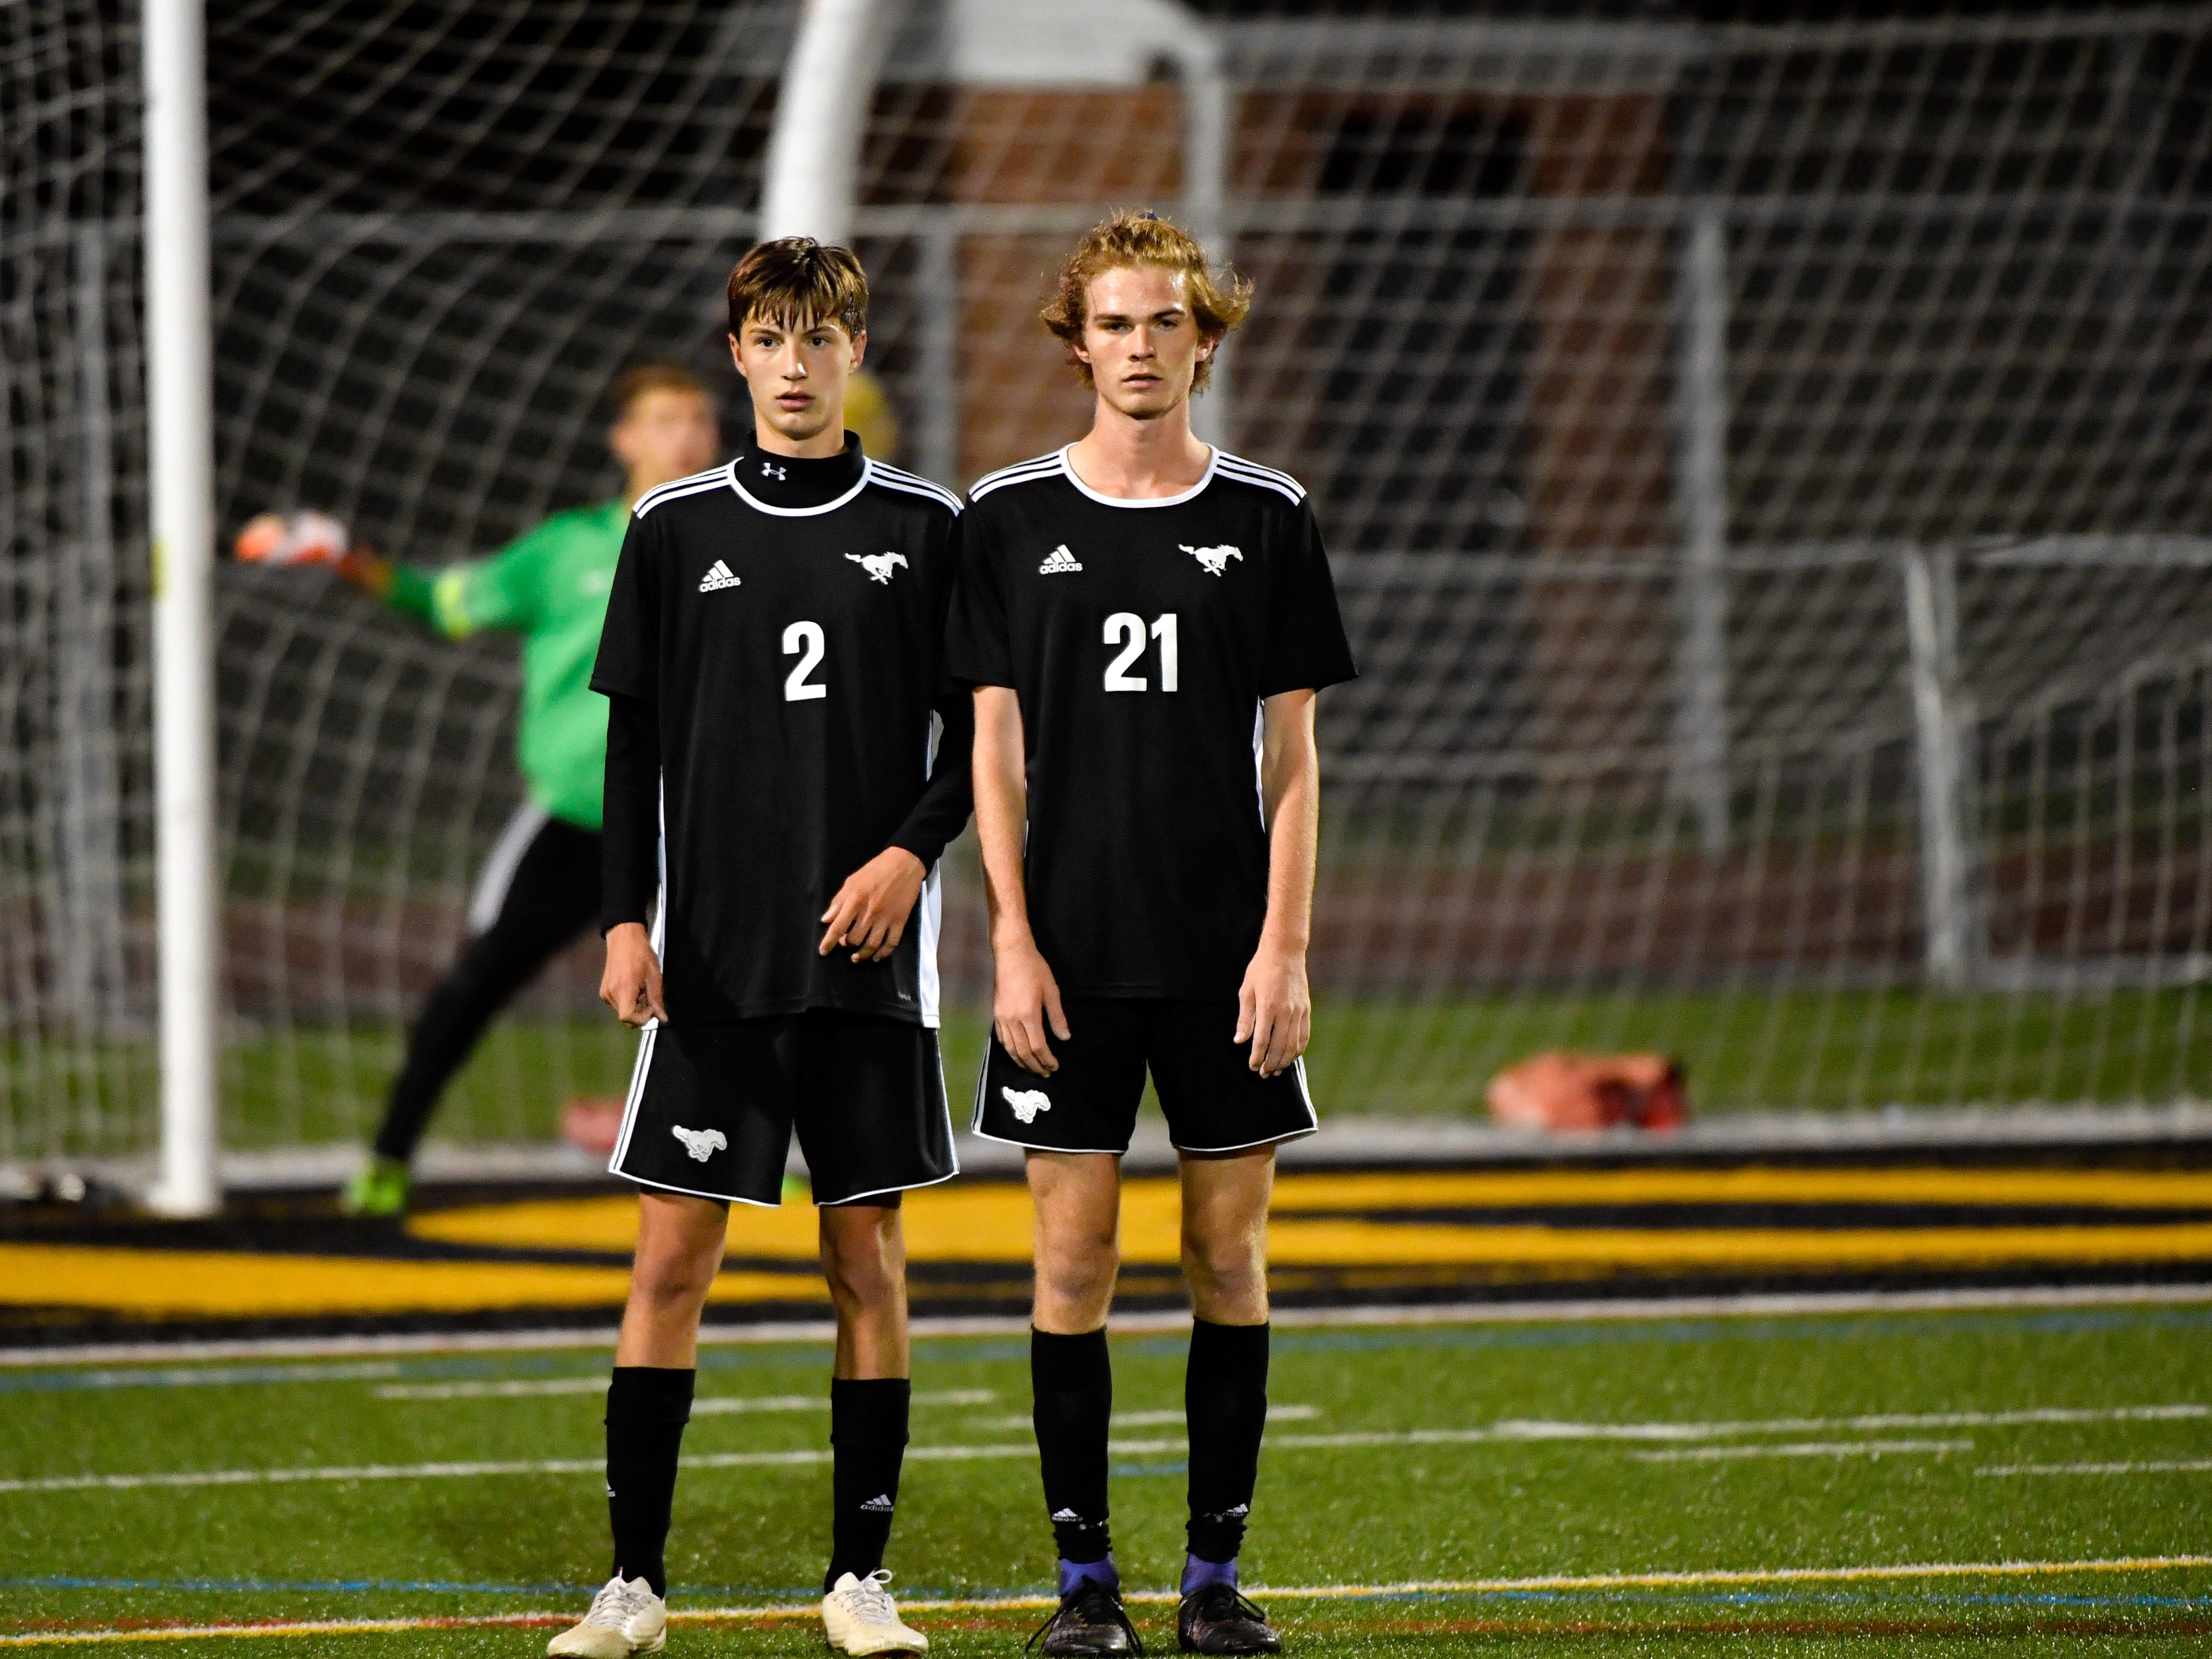 Andrew Baldwin (2) and Colby Winder (21) form a wall to block the free kick during the boys soccer game between South Western and York Catholic, October 16, 2018. The Mustangs beat the Irish 2-1.